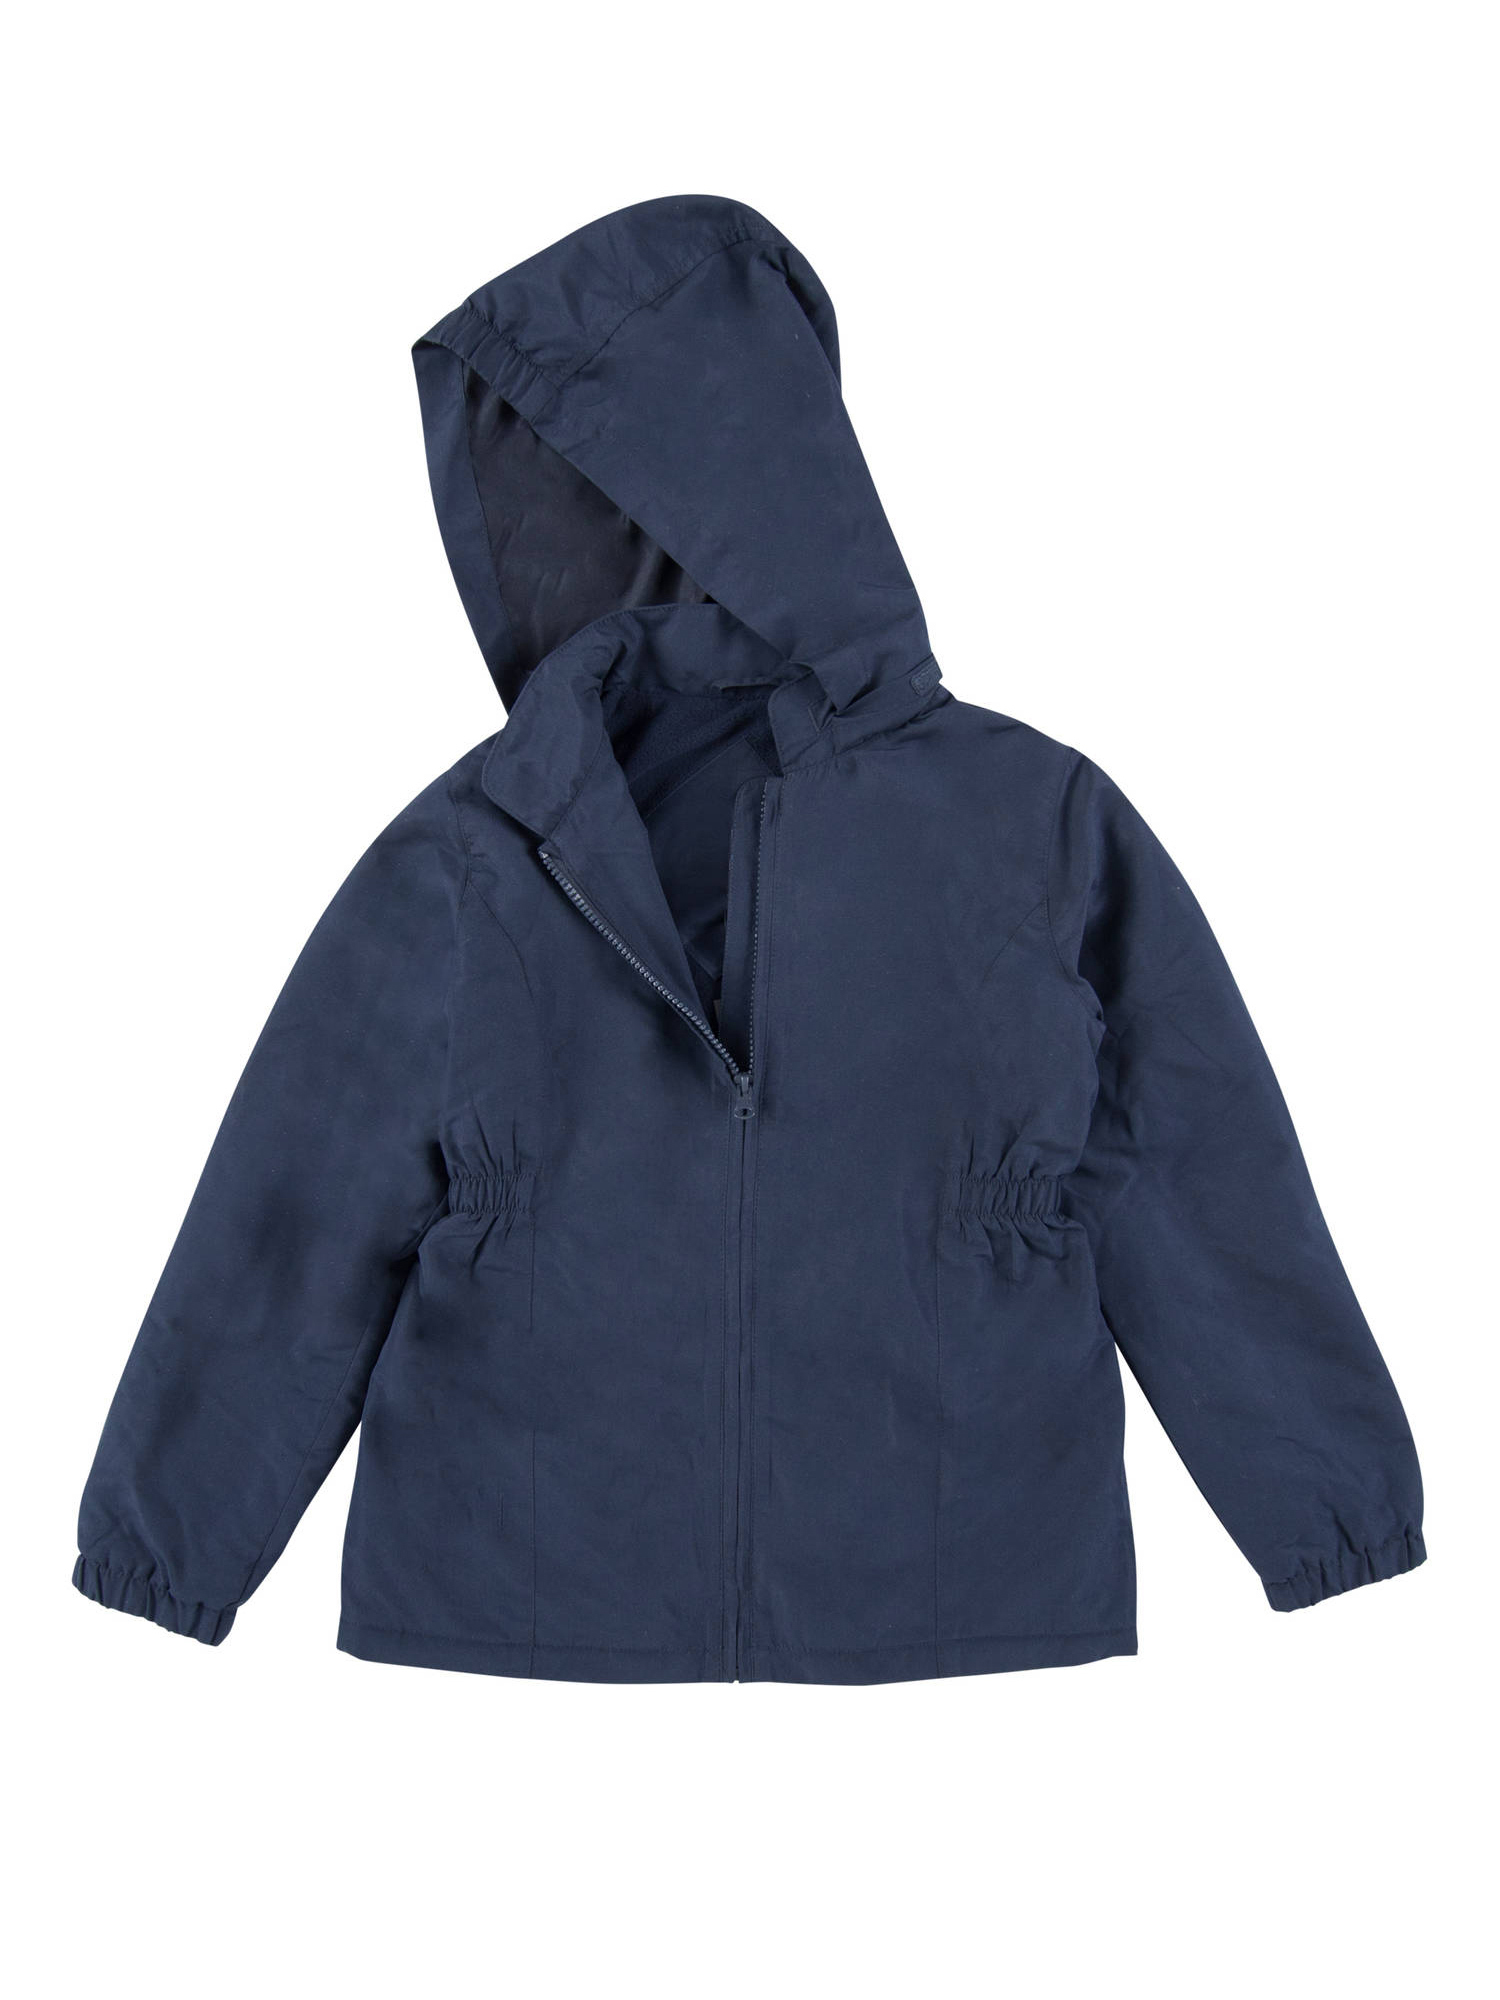 School Uniforms Girls Hooded Nylon Parka Jacket